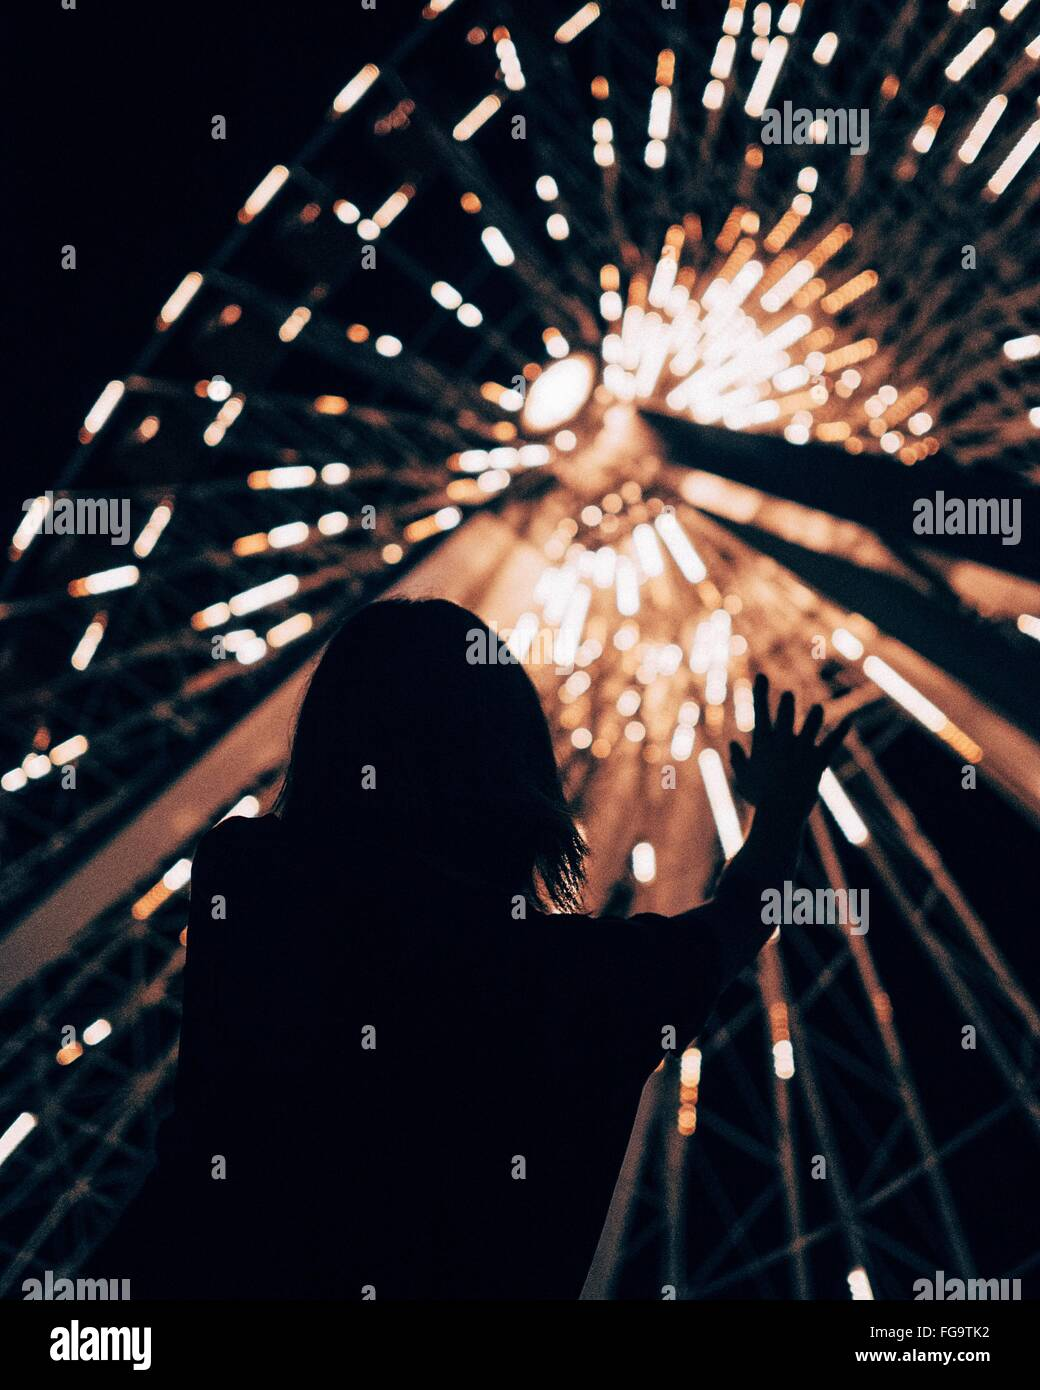 Low Angle View Of Silhouette Girl Against Illuminated Ferris Wheel At Night In Amusement Park Stock Photo